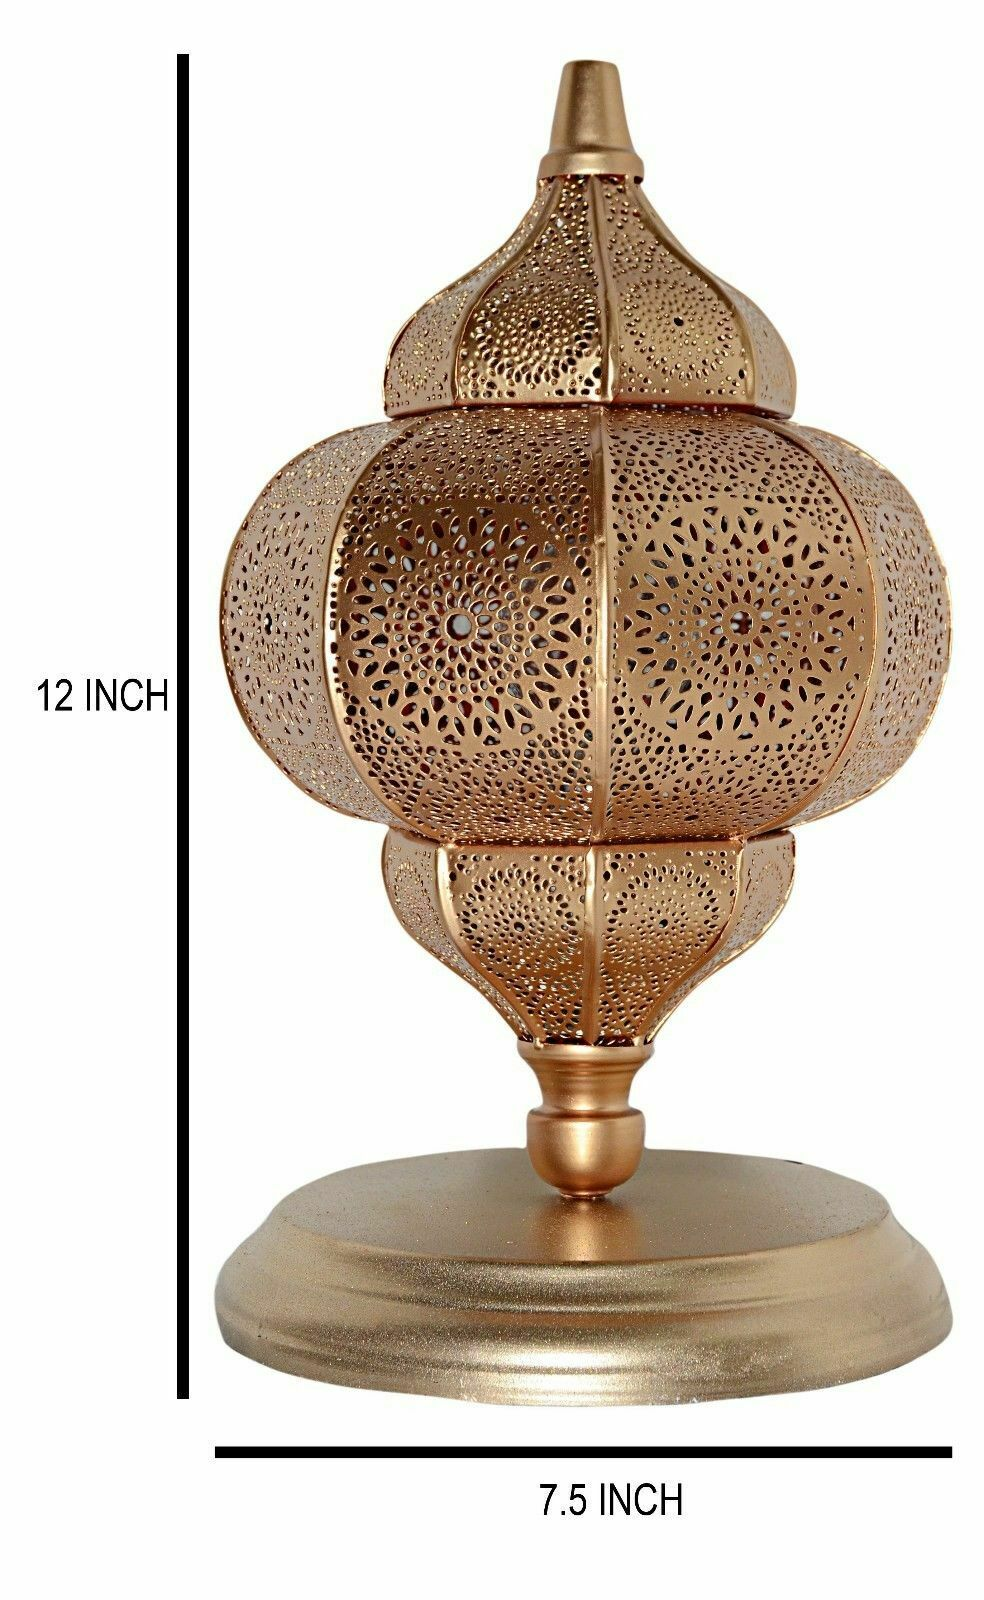 Indian Night Lampshade Moroccan Bedroom Floor Desk Metal Lamp Yellow 12 X 7 5 For Sale Online Ebay